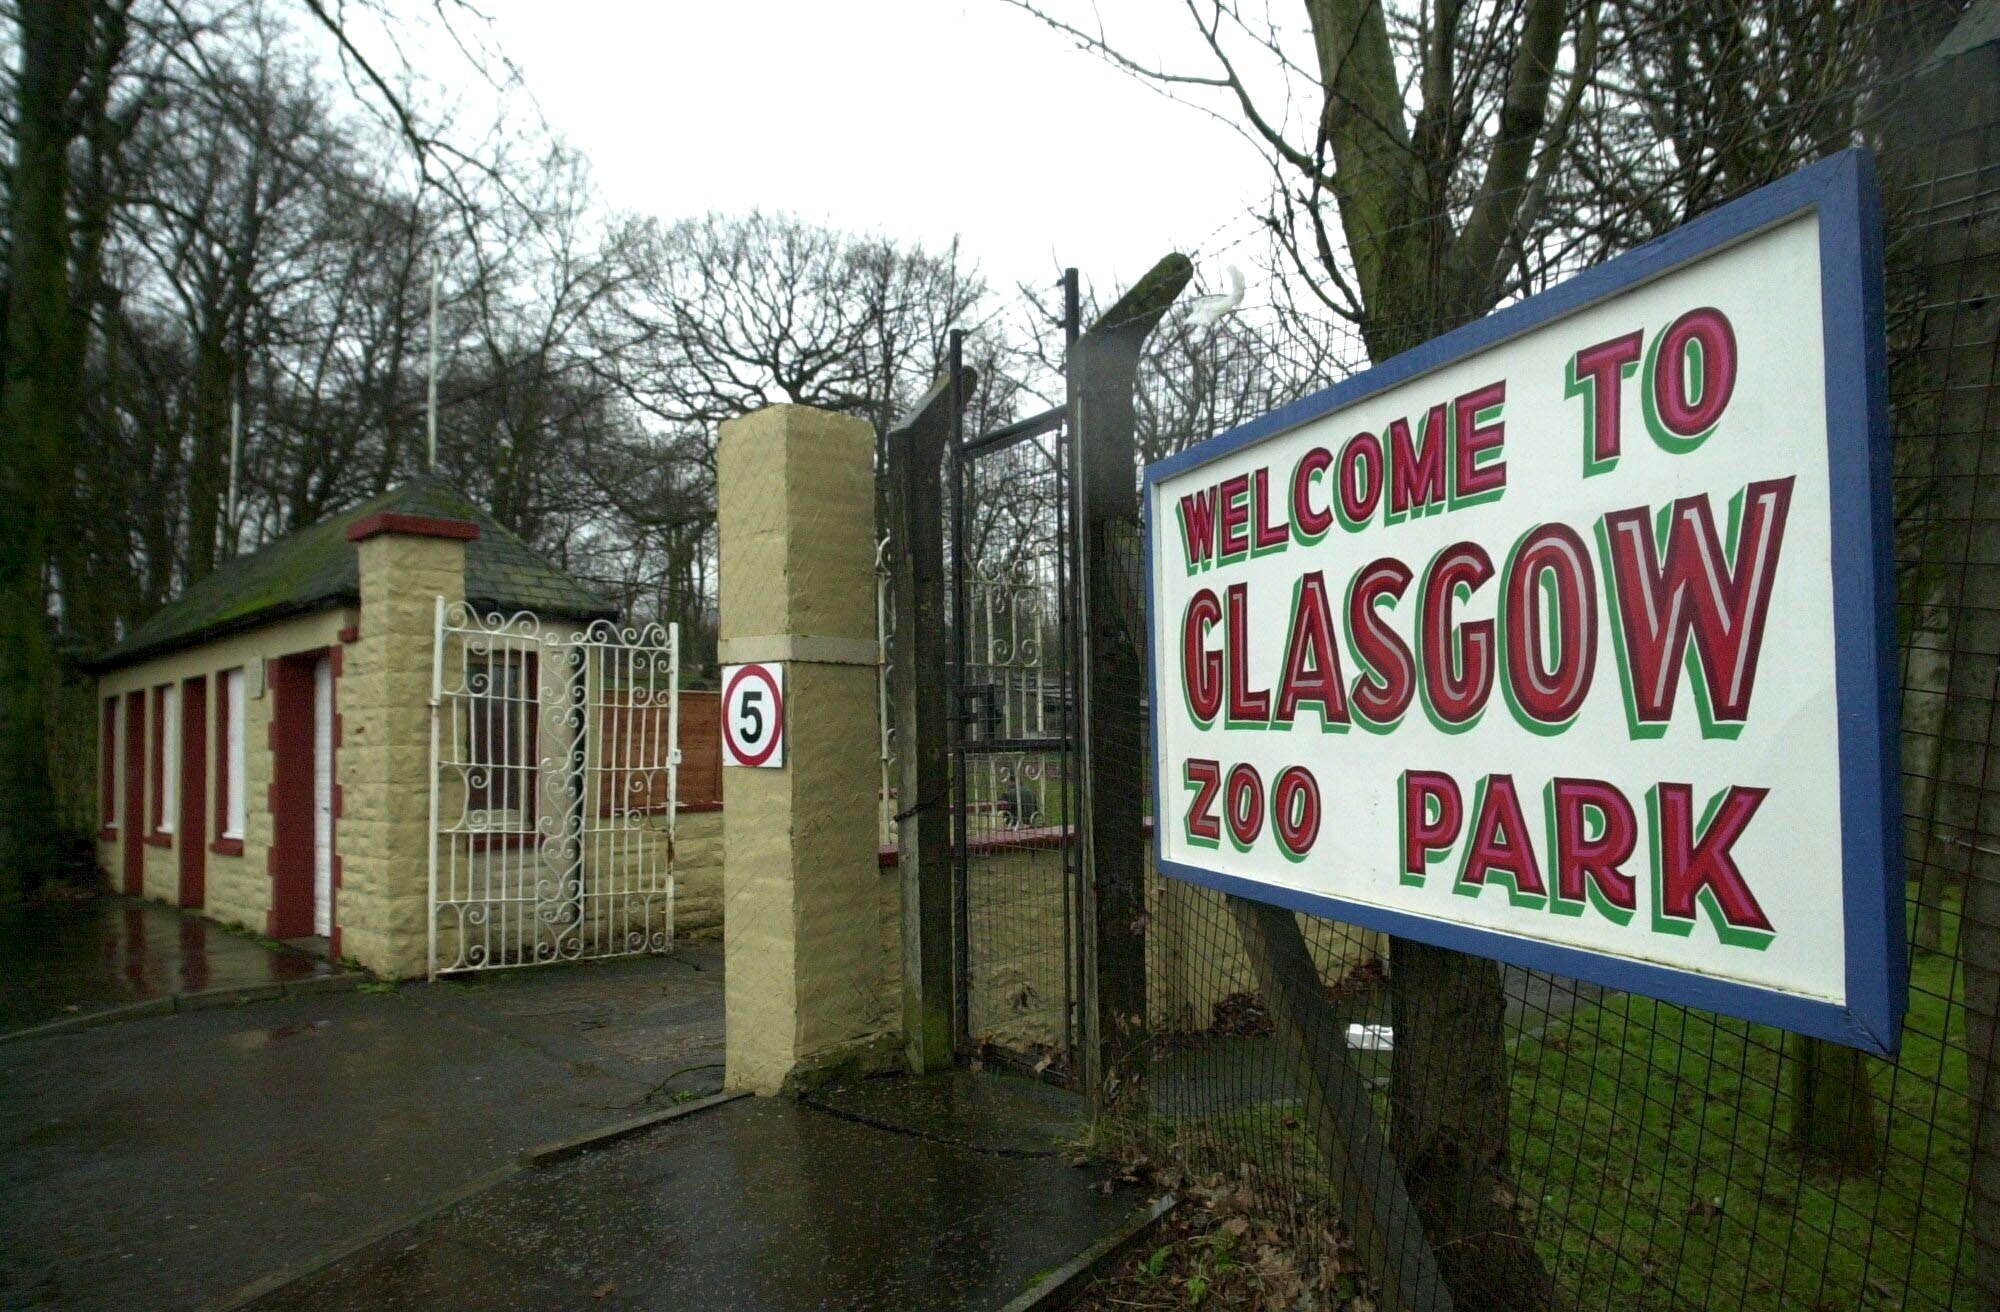 Remember Glasgow Zoo? Here's what it looked like before the redevelopment